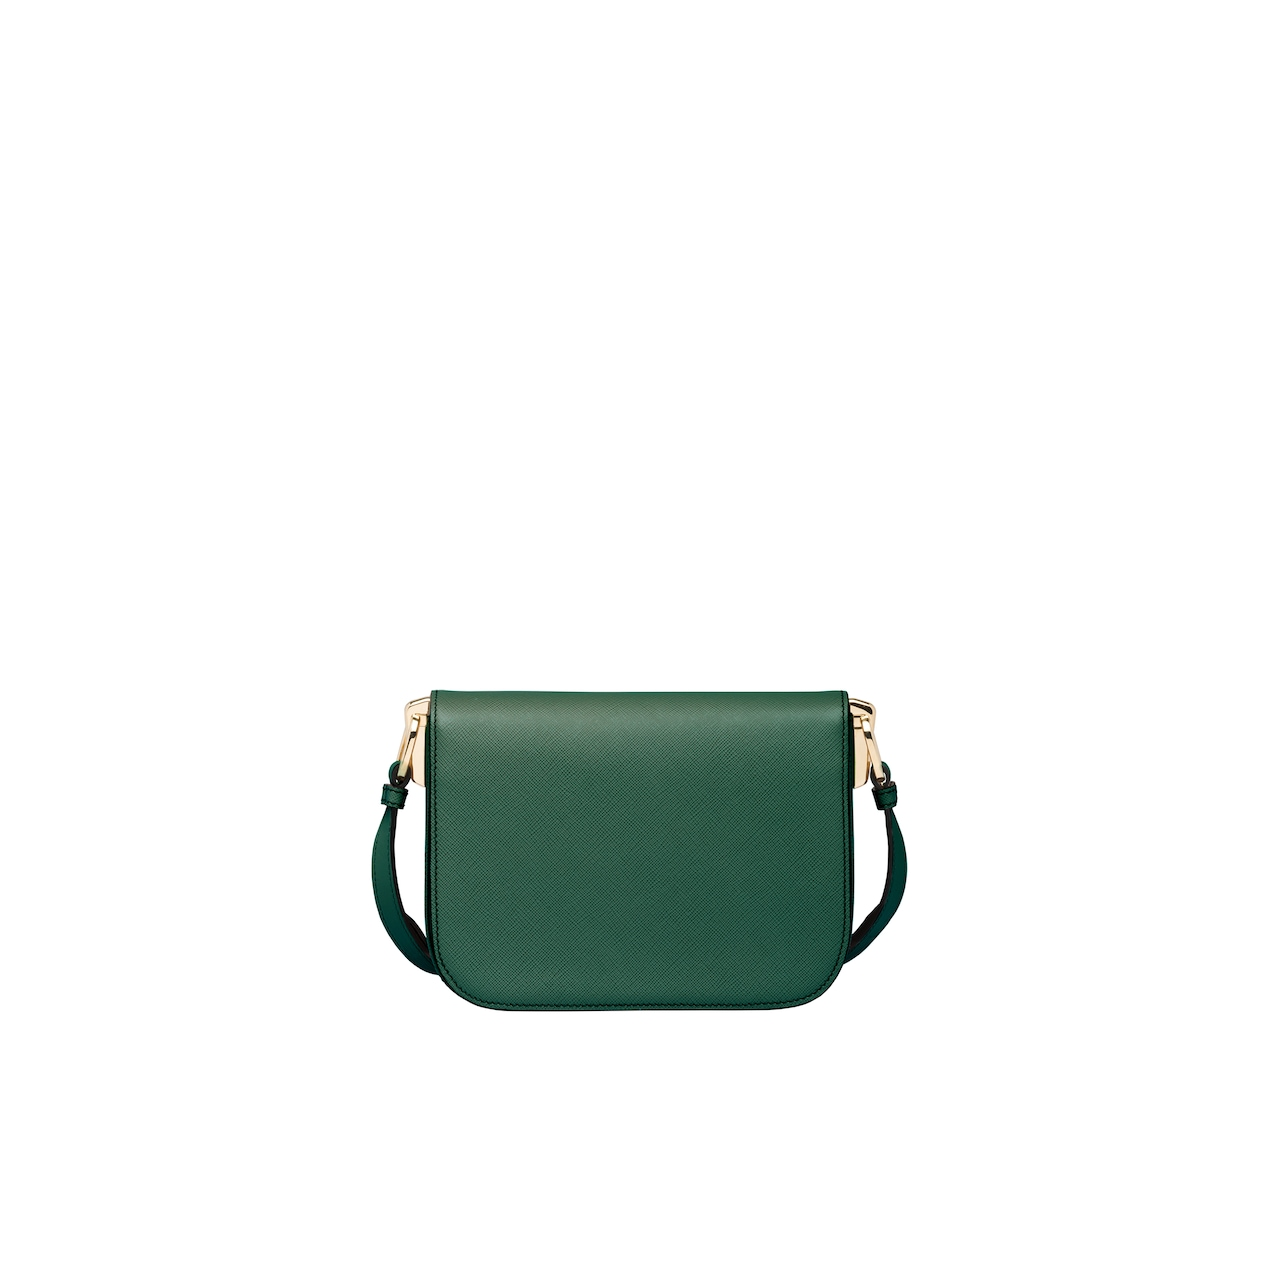 Prada Prada Emblème Saffiano leather bag 4